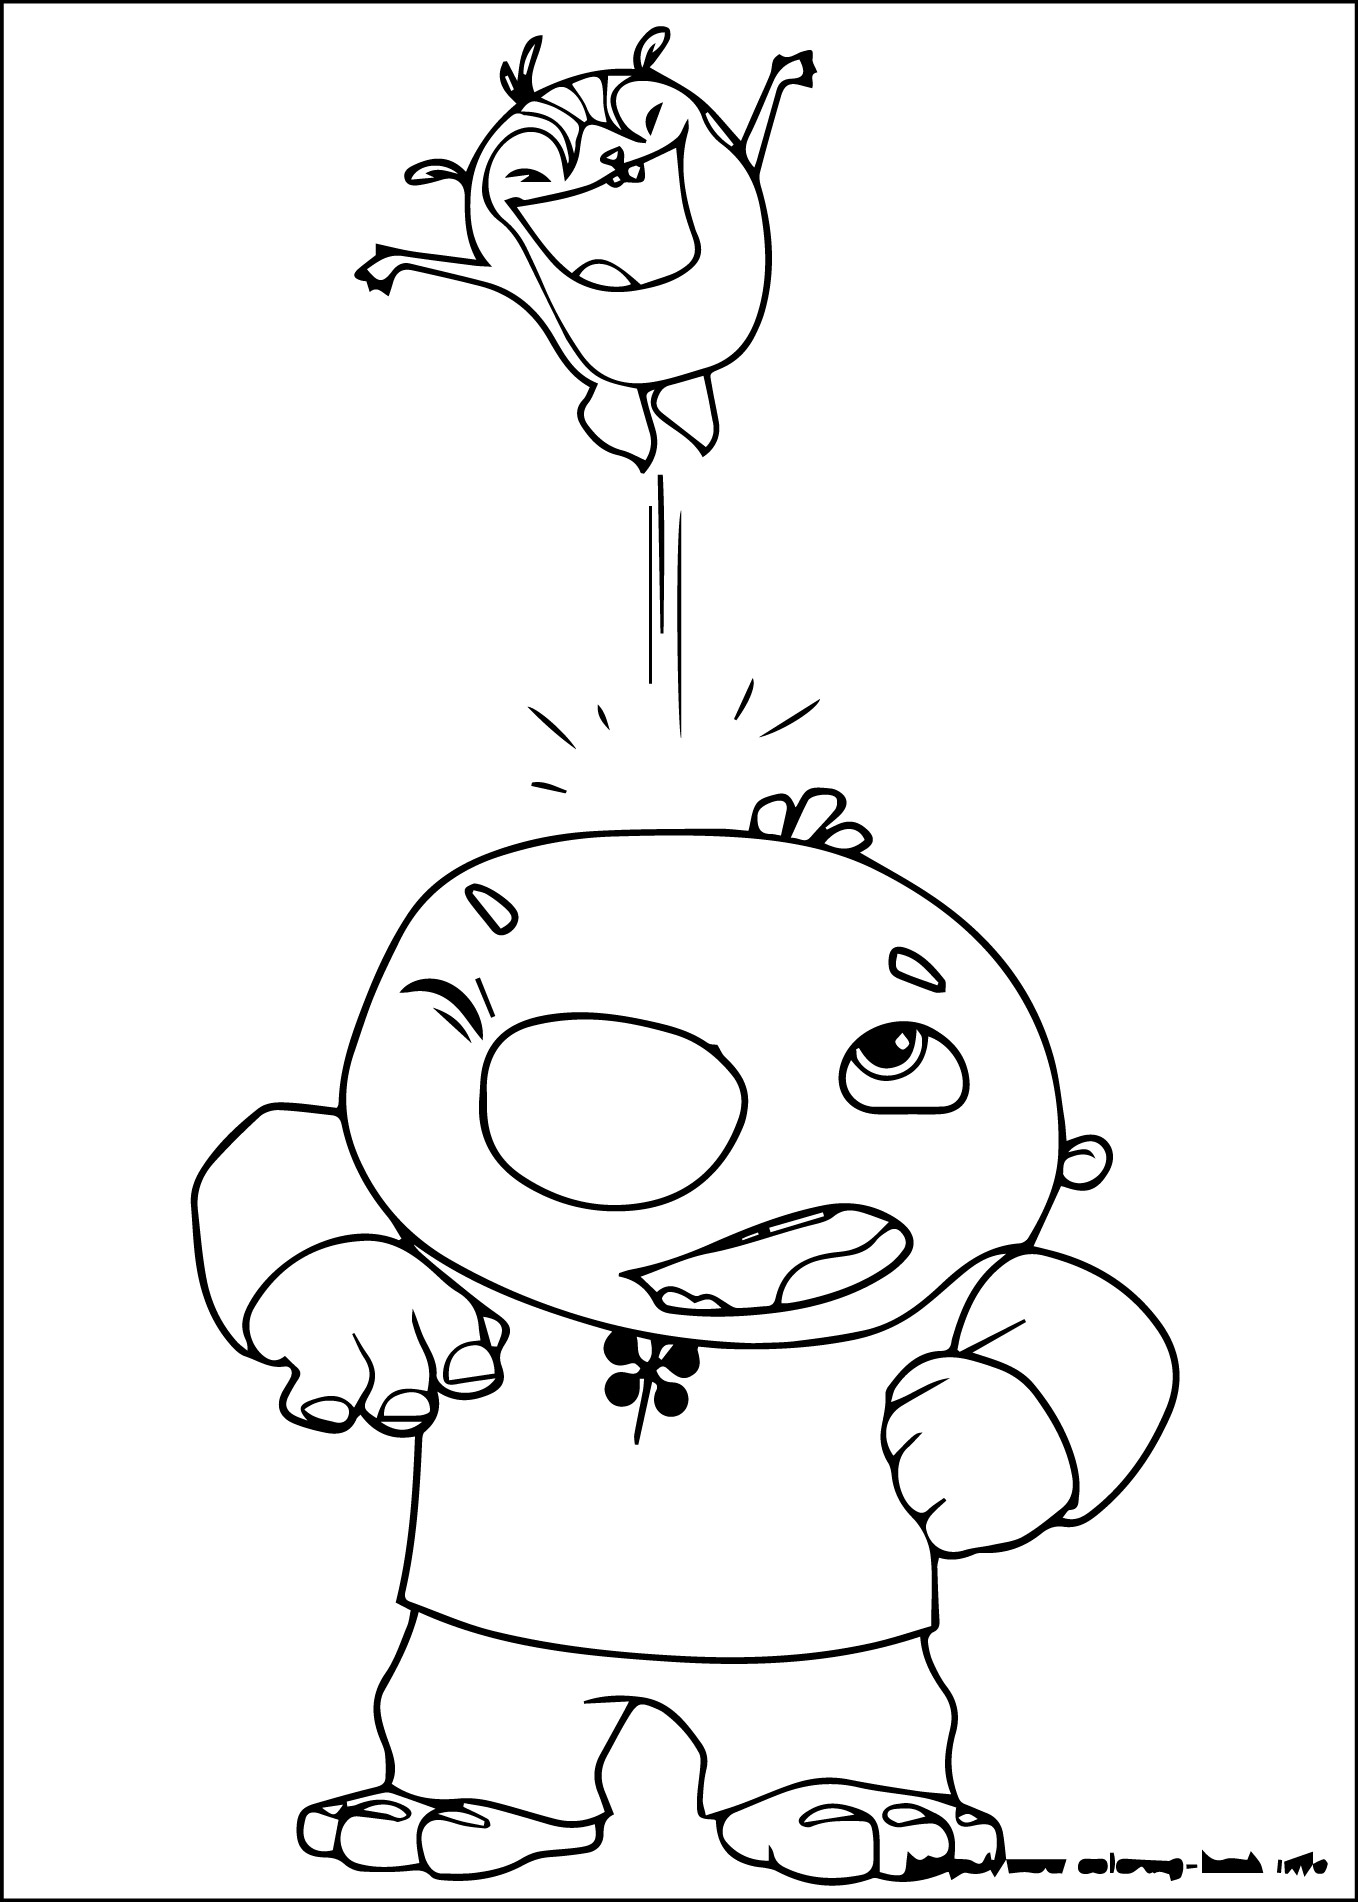 Wallykazam coloring pages download and print for free